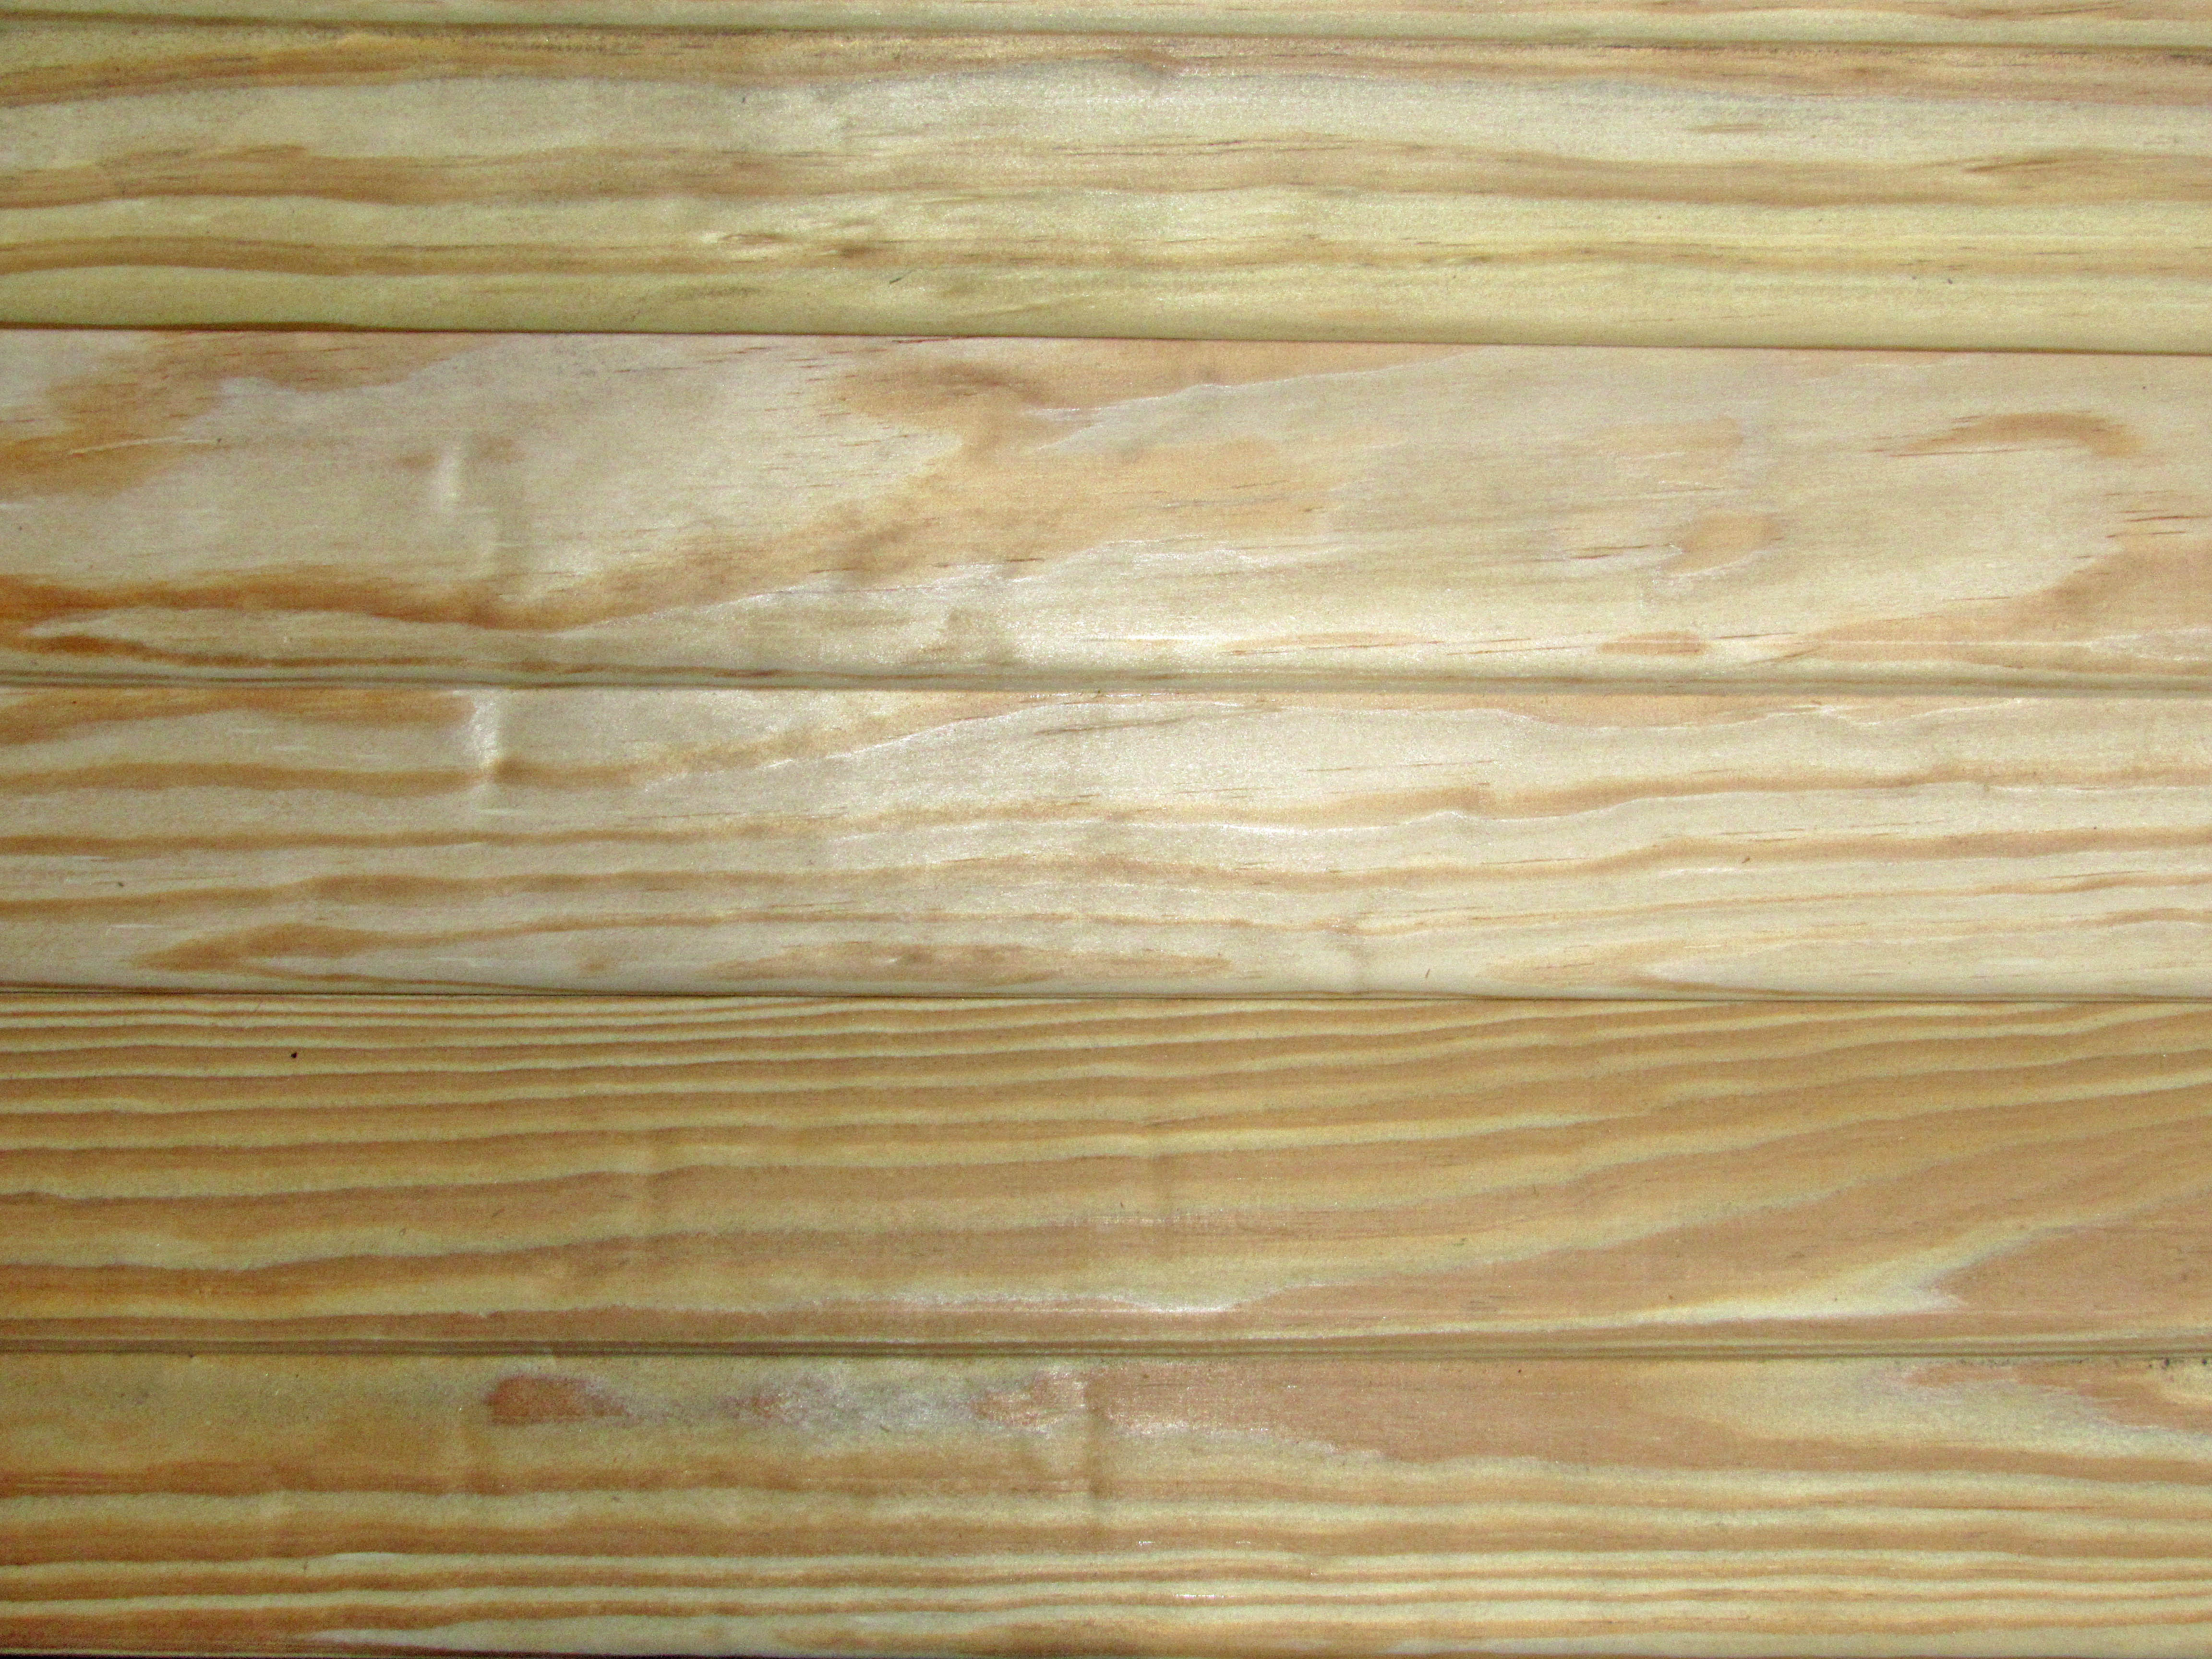 117 Pine Siding Mm2206 Capitol City Lumber